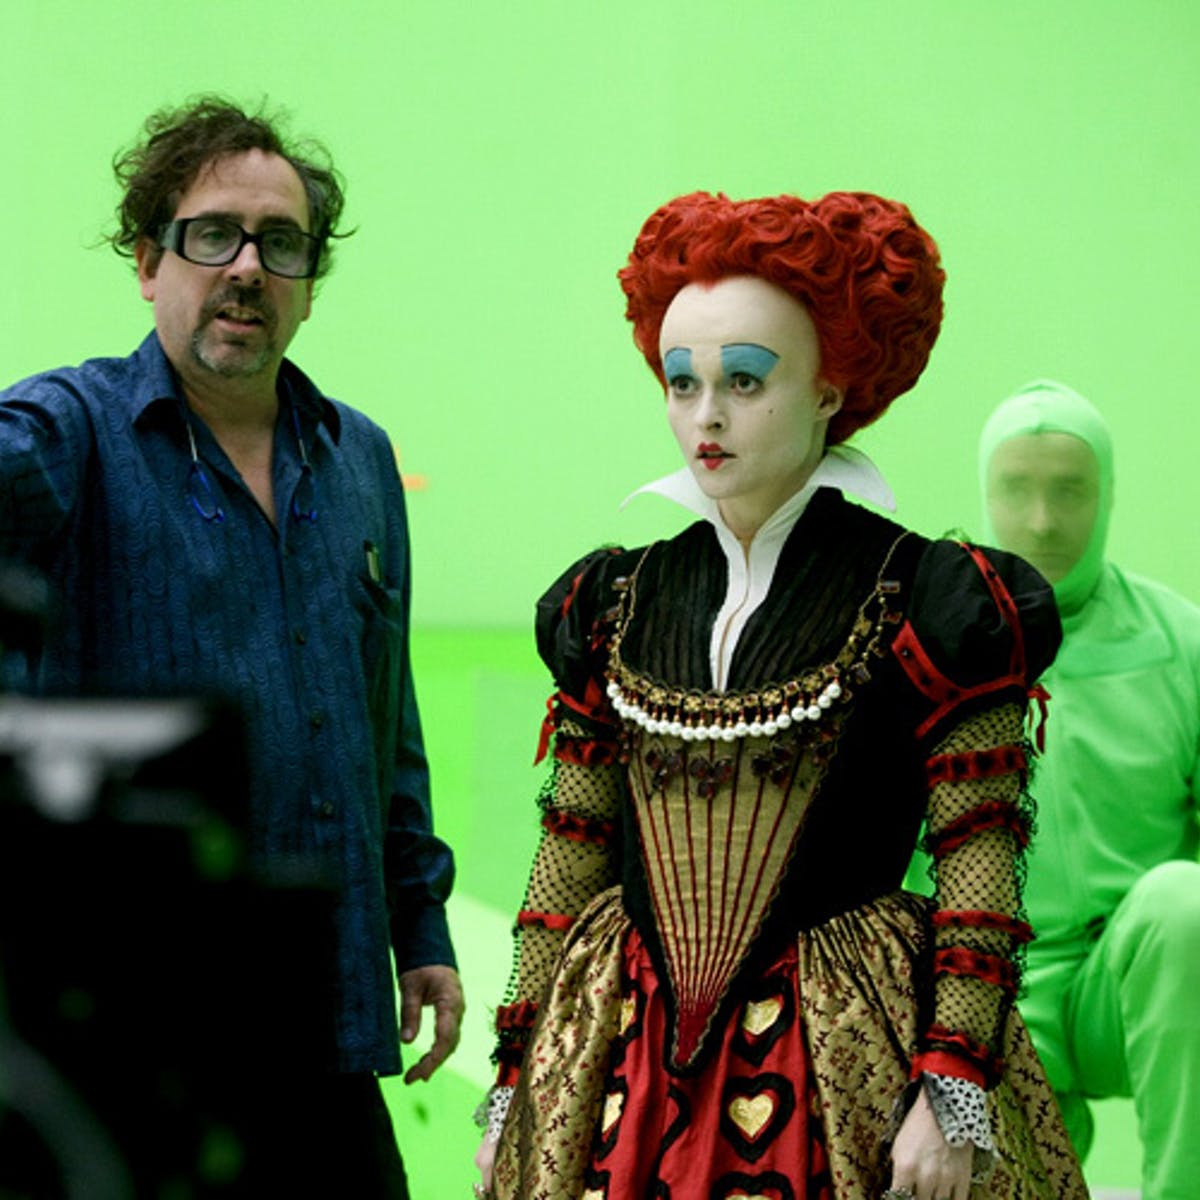 Tim Burton's VFX History, From 'Beetlejuice' to 'Miss Peregrine' | Inverse